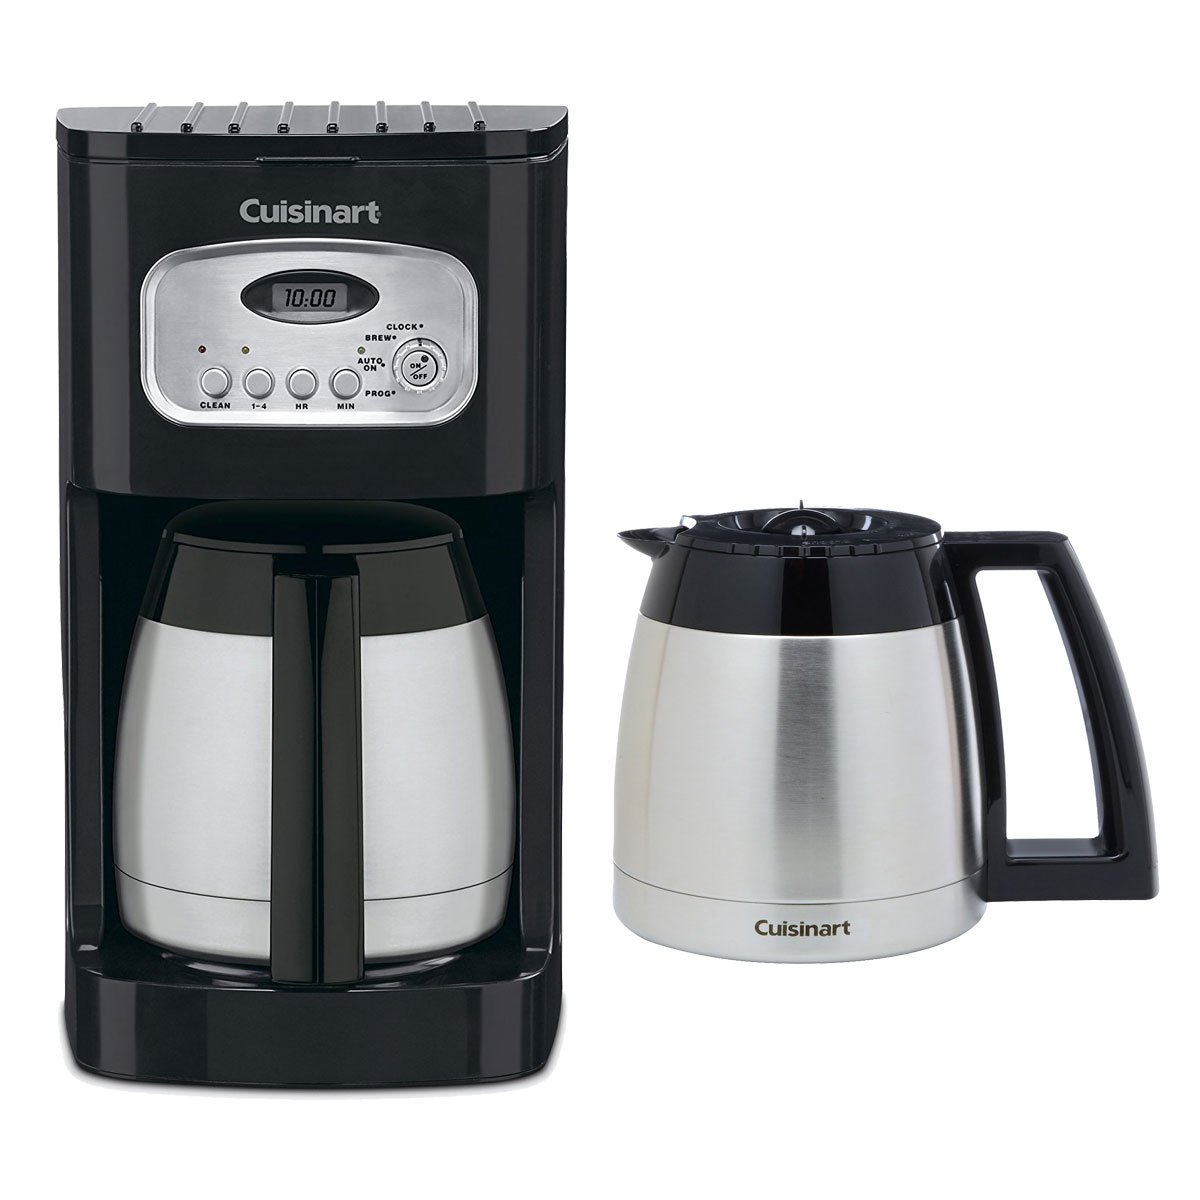 Cuisinart DCC-1150BK 10-Cup Thermal Coffeemaker Black w/ Additional Carafe by WhoIsCamera (Image #1)